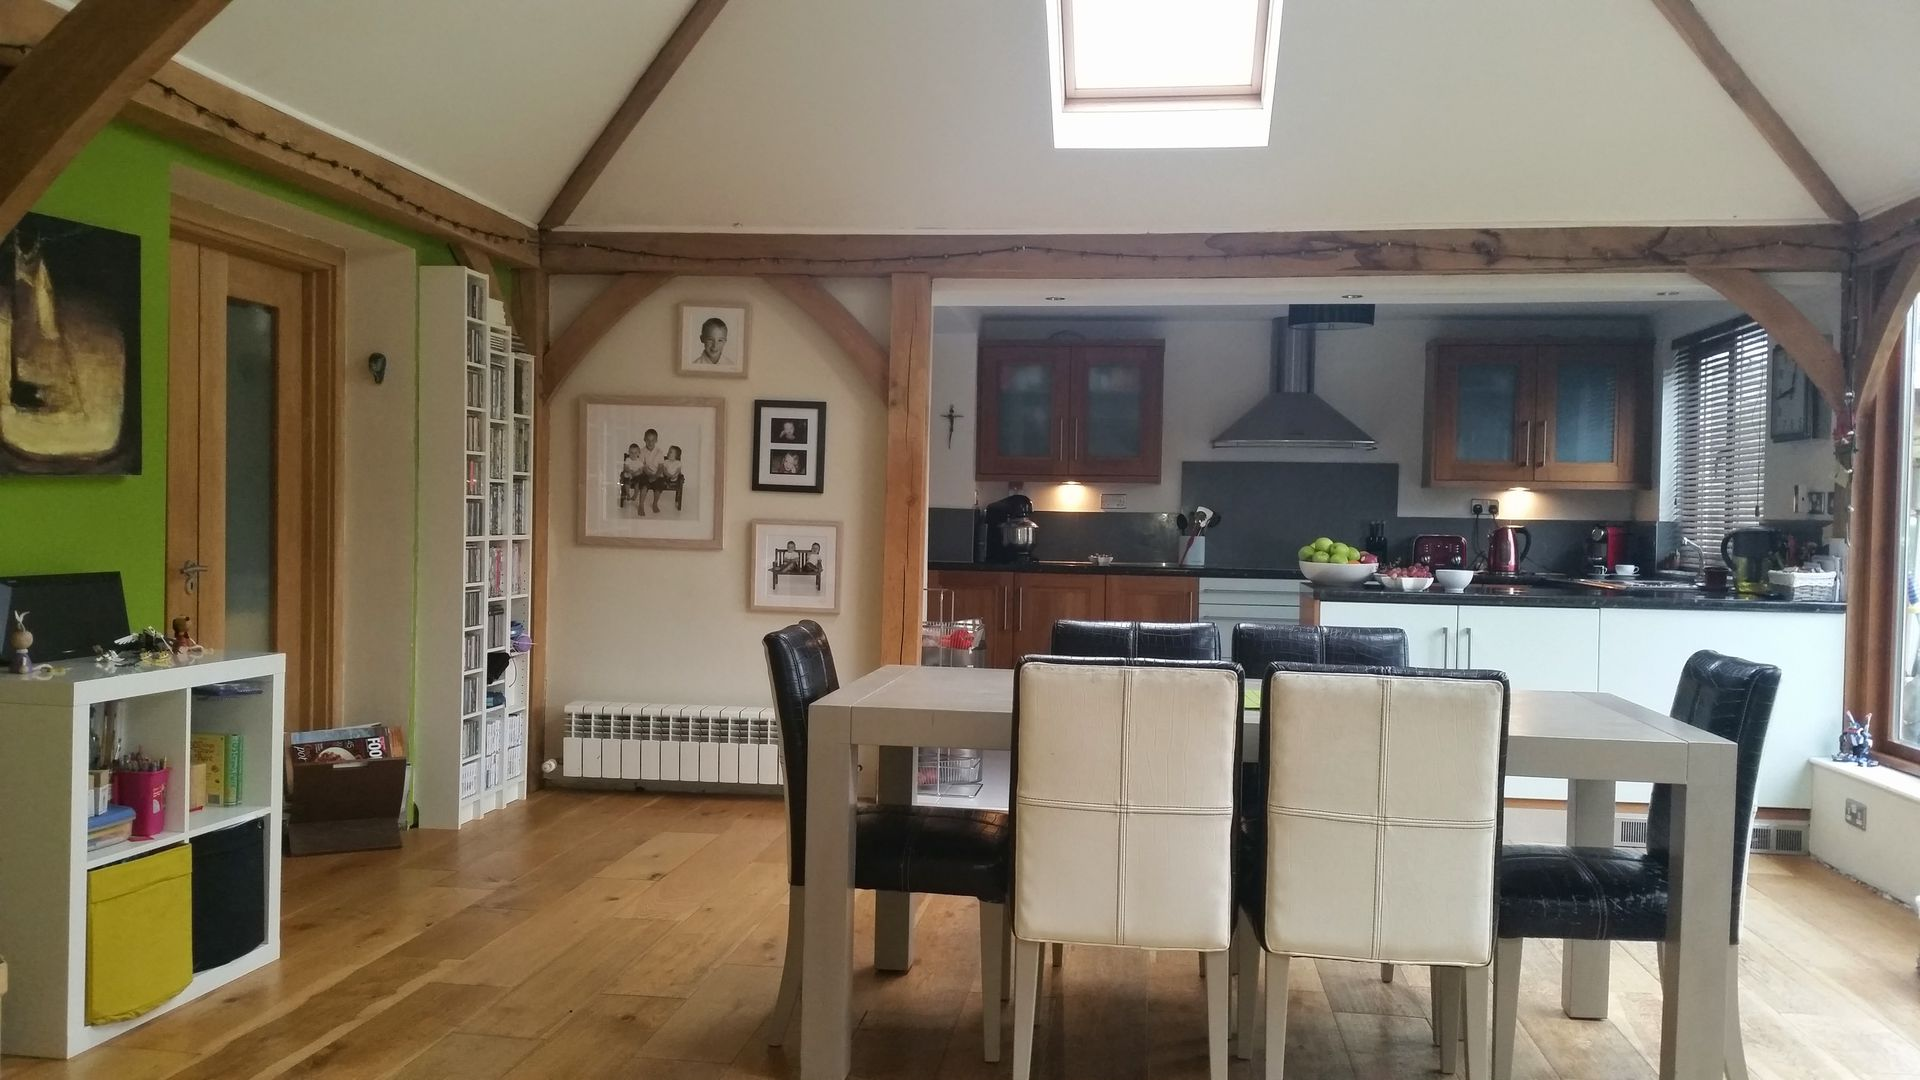 Spacious family home Dublin Booked 2018 open for offers 2019